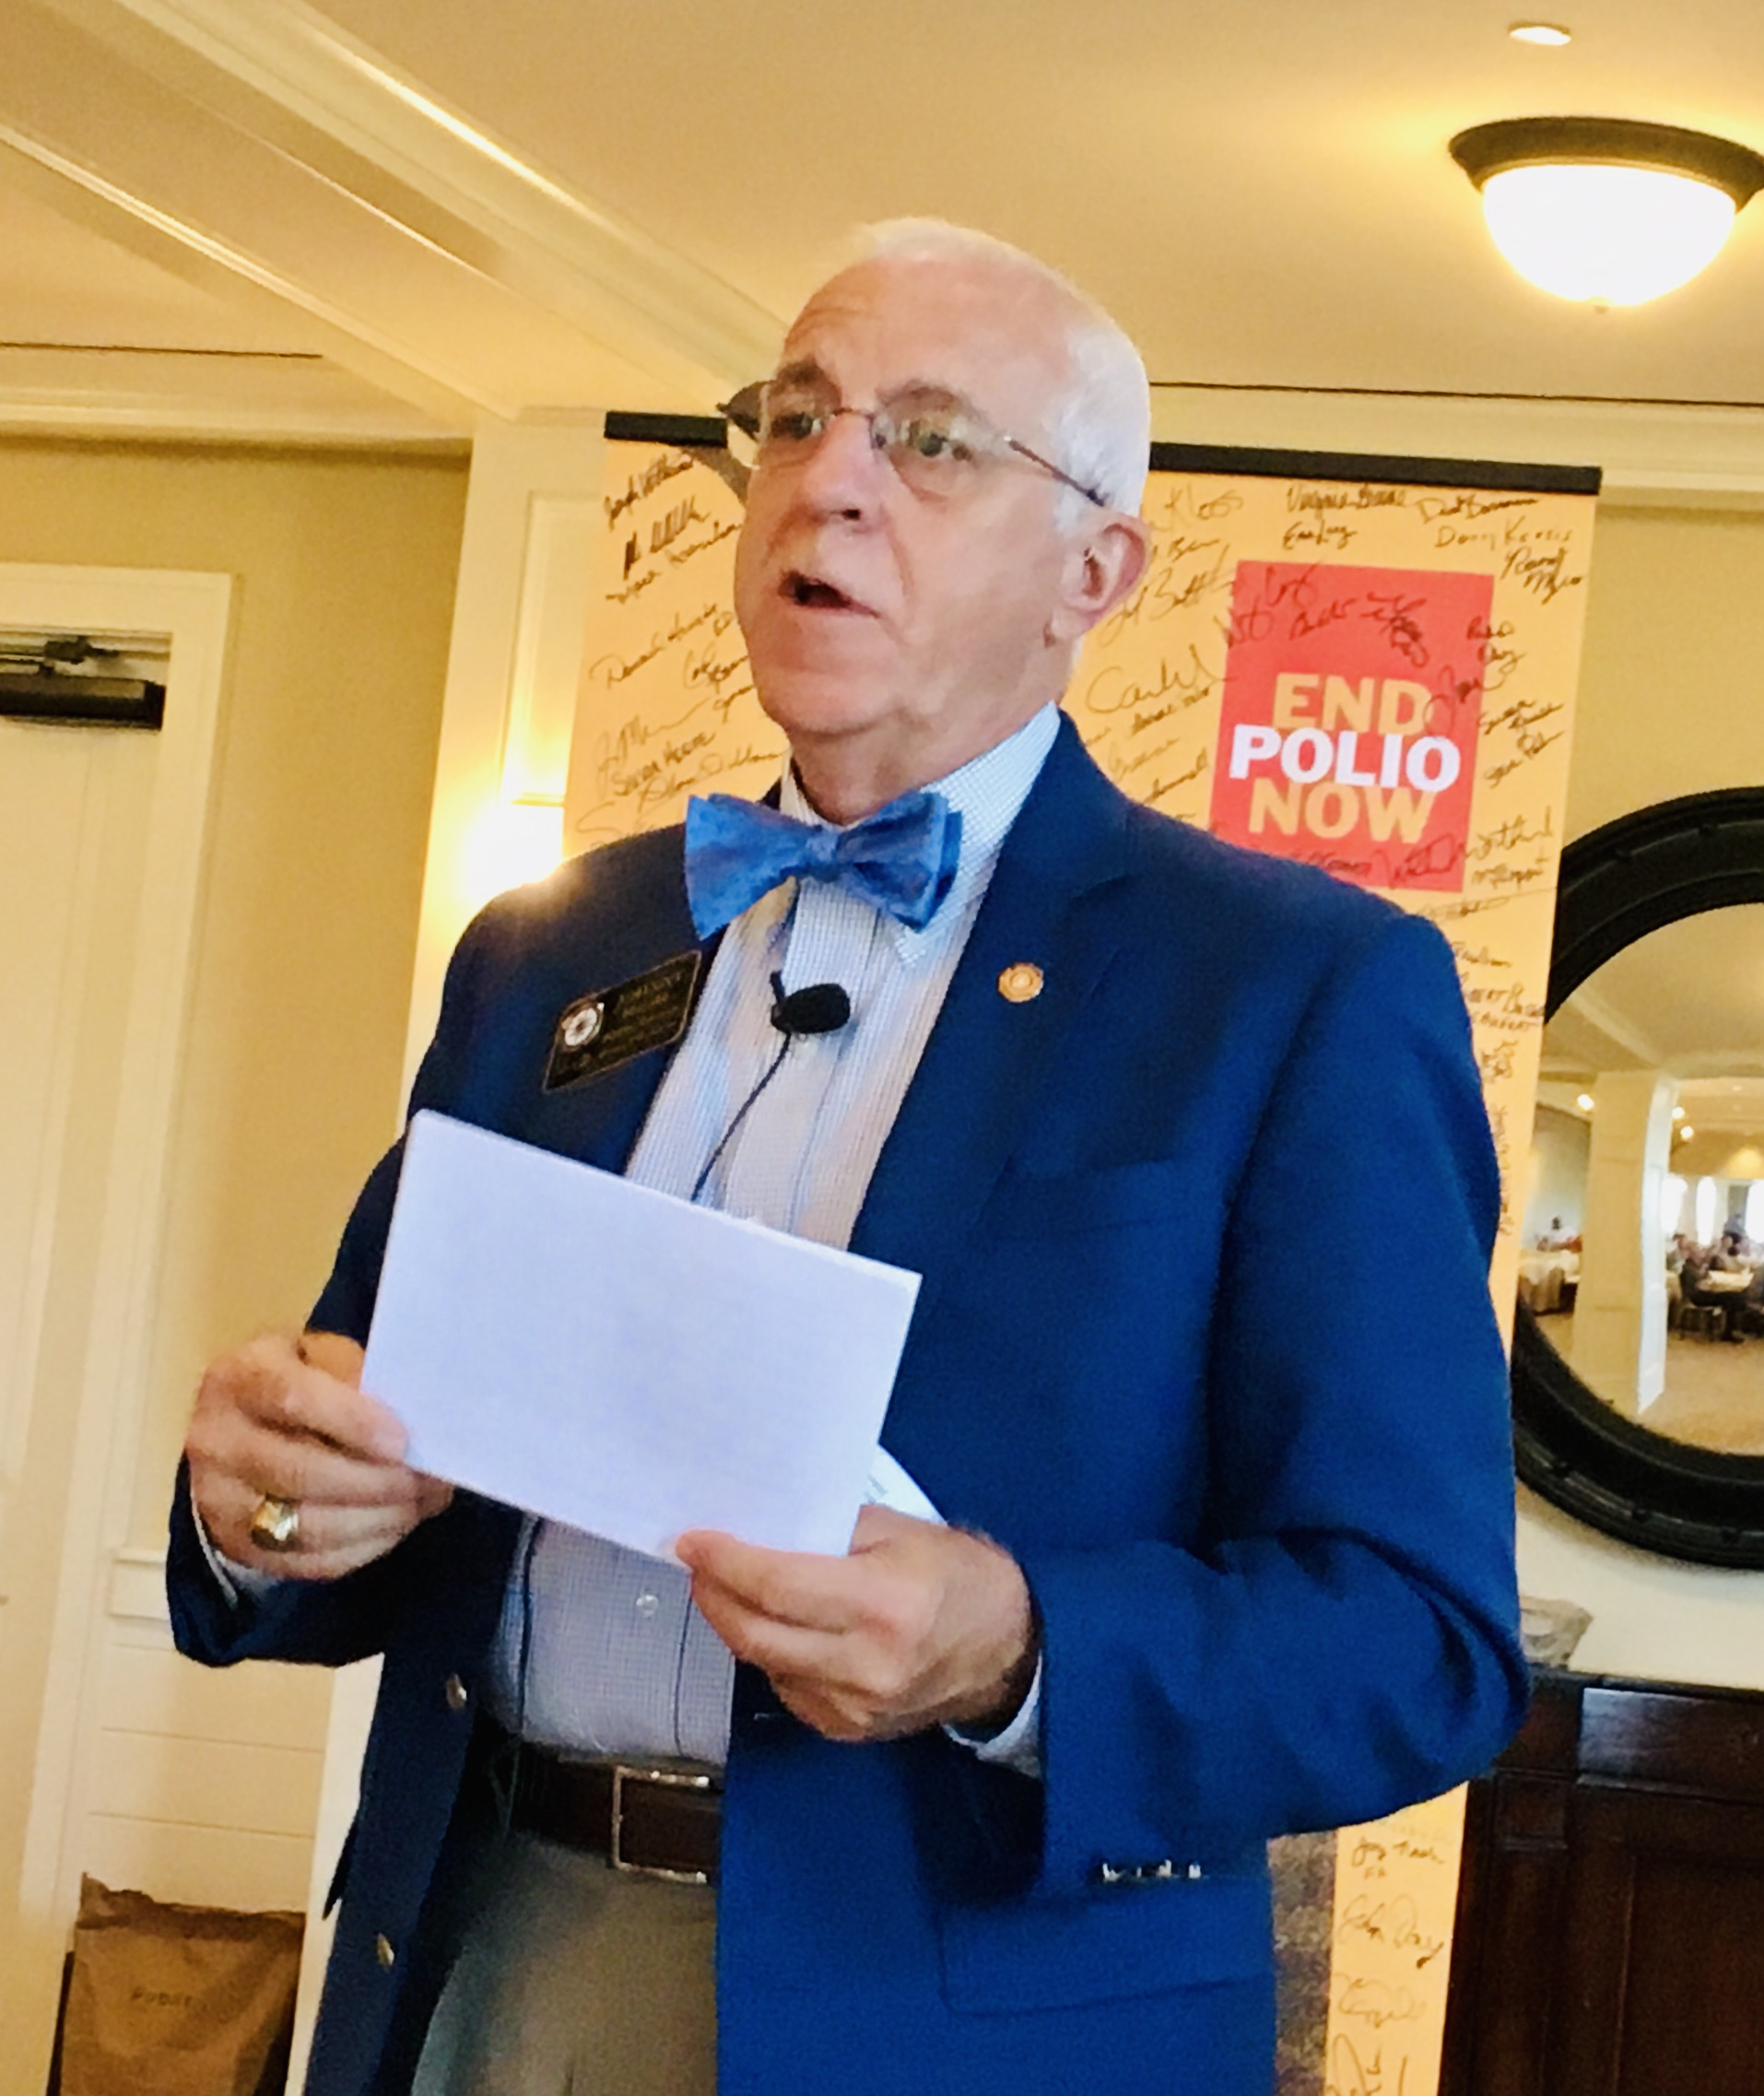 On September 11, Rotary District Governor Johnny Moore spoke at the weekly breakfast meeting and shared his vision of the world mission of Rotary.